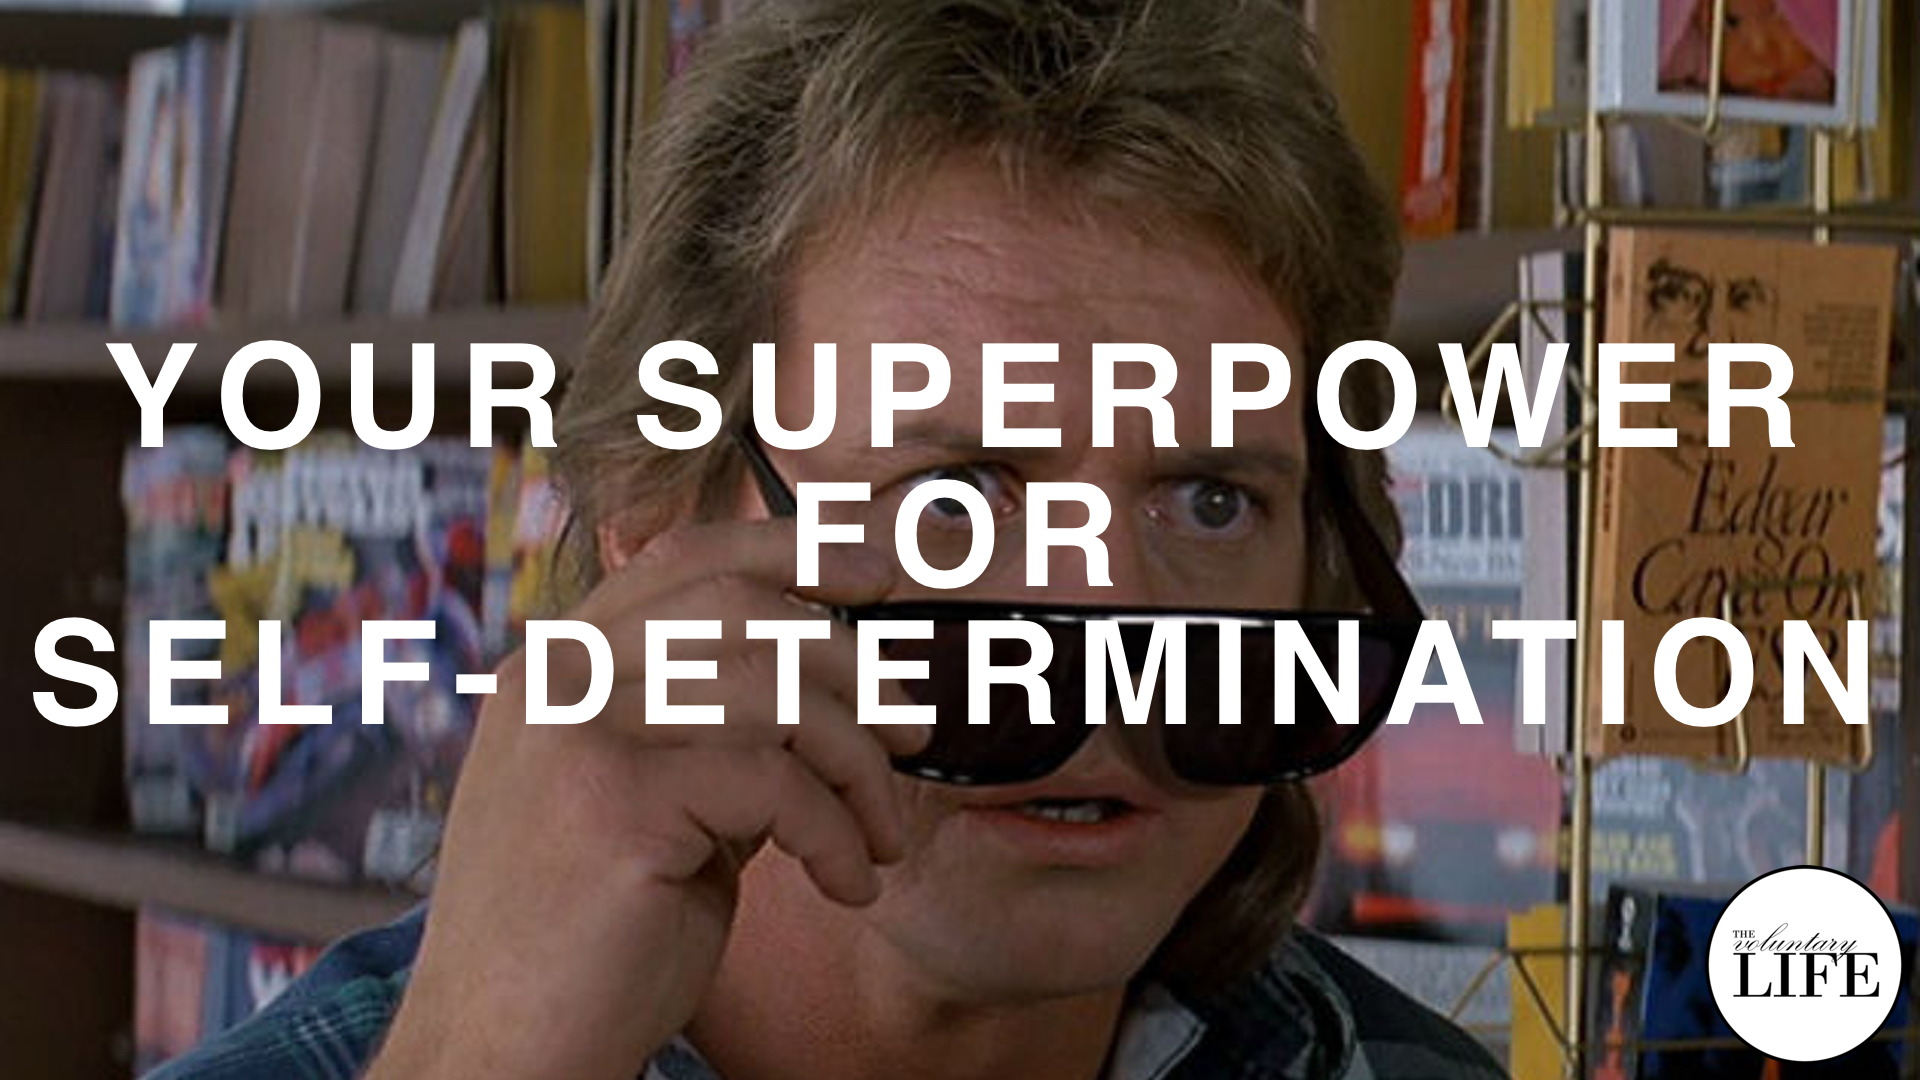 248 Thinking Rationally Part 6: Your Superpower For Self-Determination